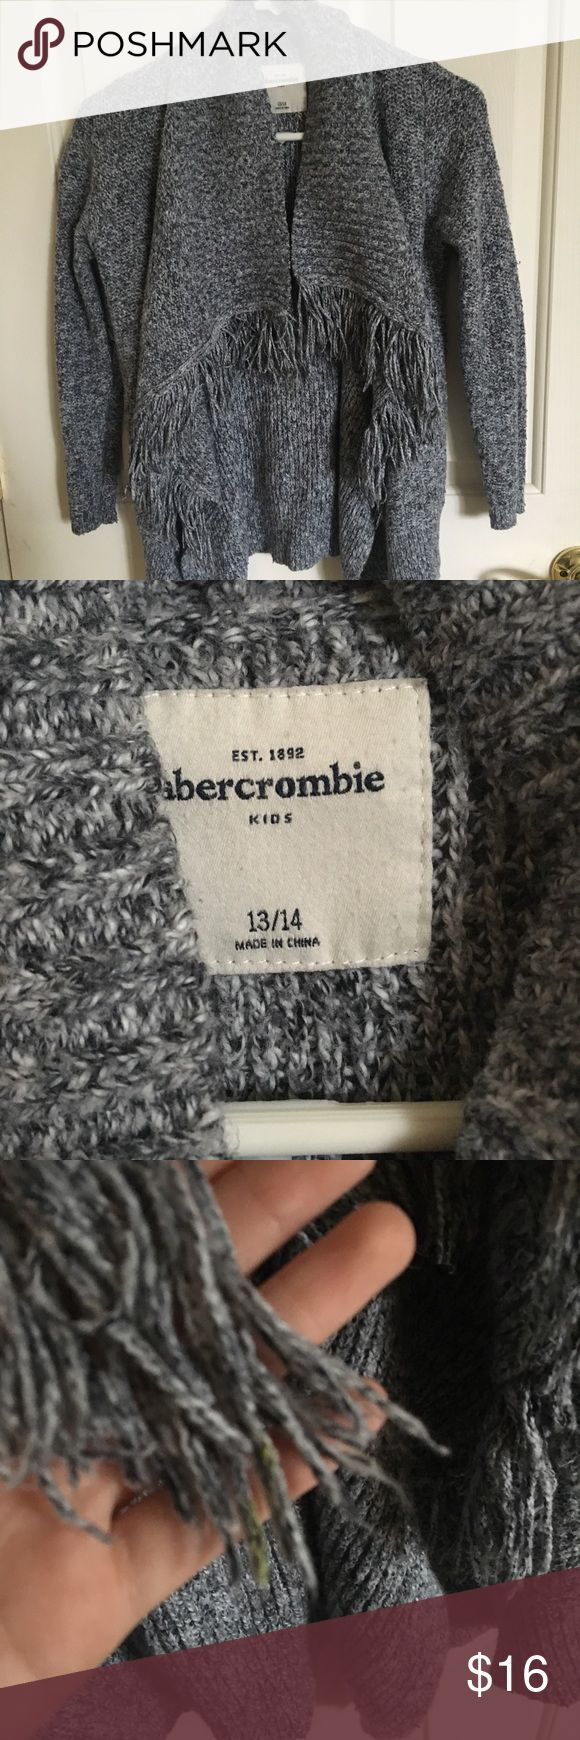 Abercrombie grey cardigan sweater Grey cardigan from Abercrombie, gently worn and in good condition except for few strands of fringe that yellow paint on them. Keeps you super warm and goes with a lot of outfits abercrombie kids Shirts & Tops Sweaters